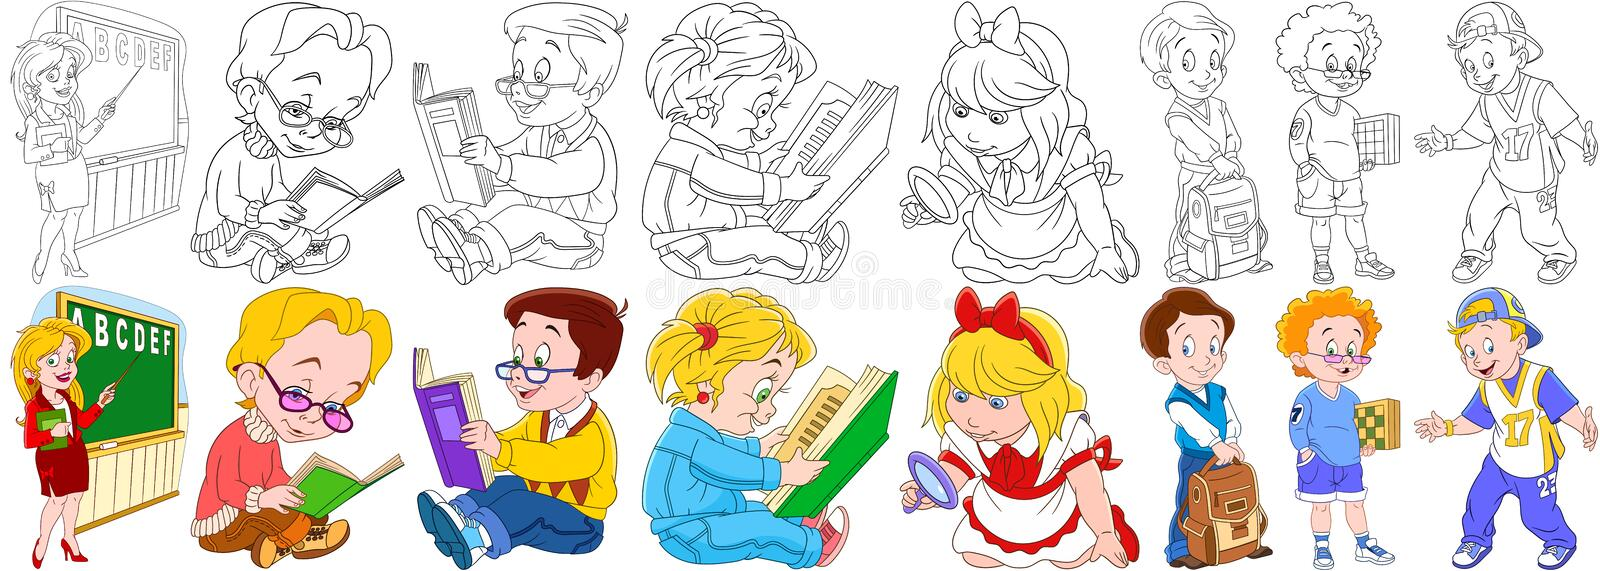 Cartoon children school set royalty free illustration